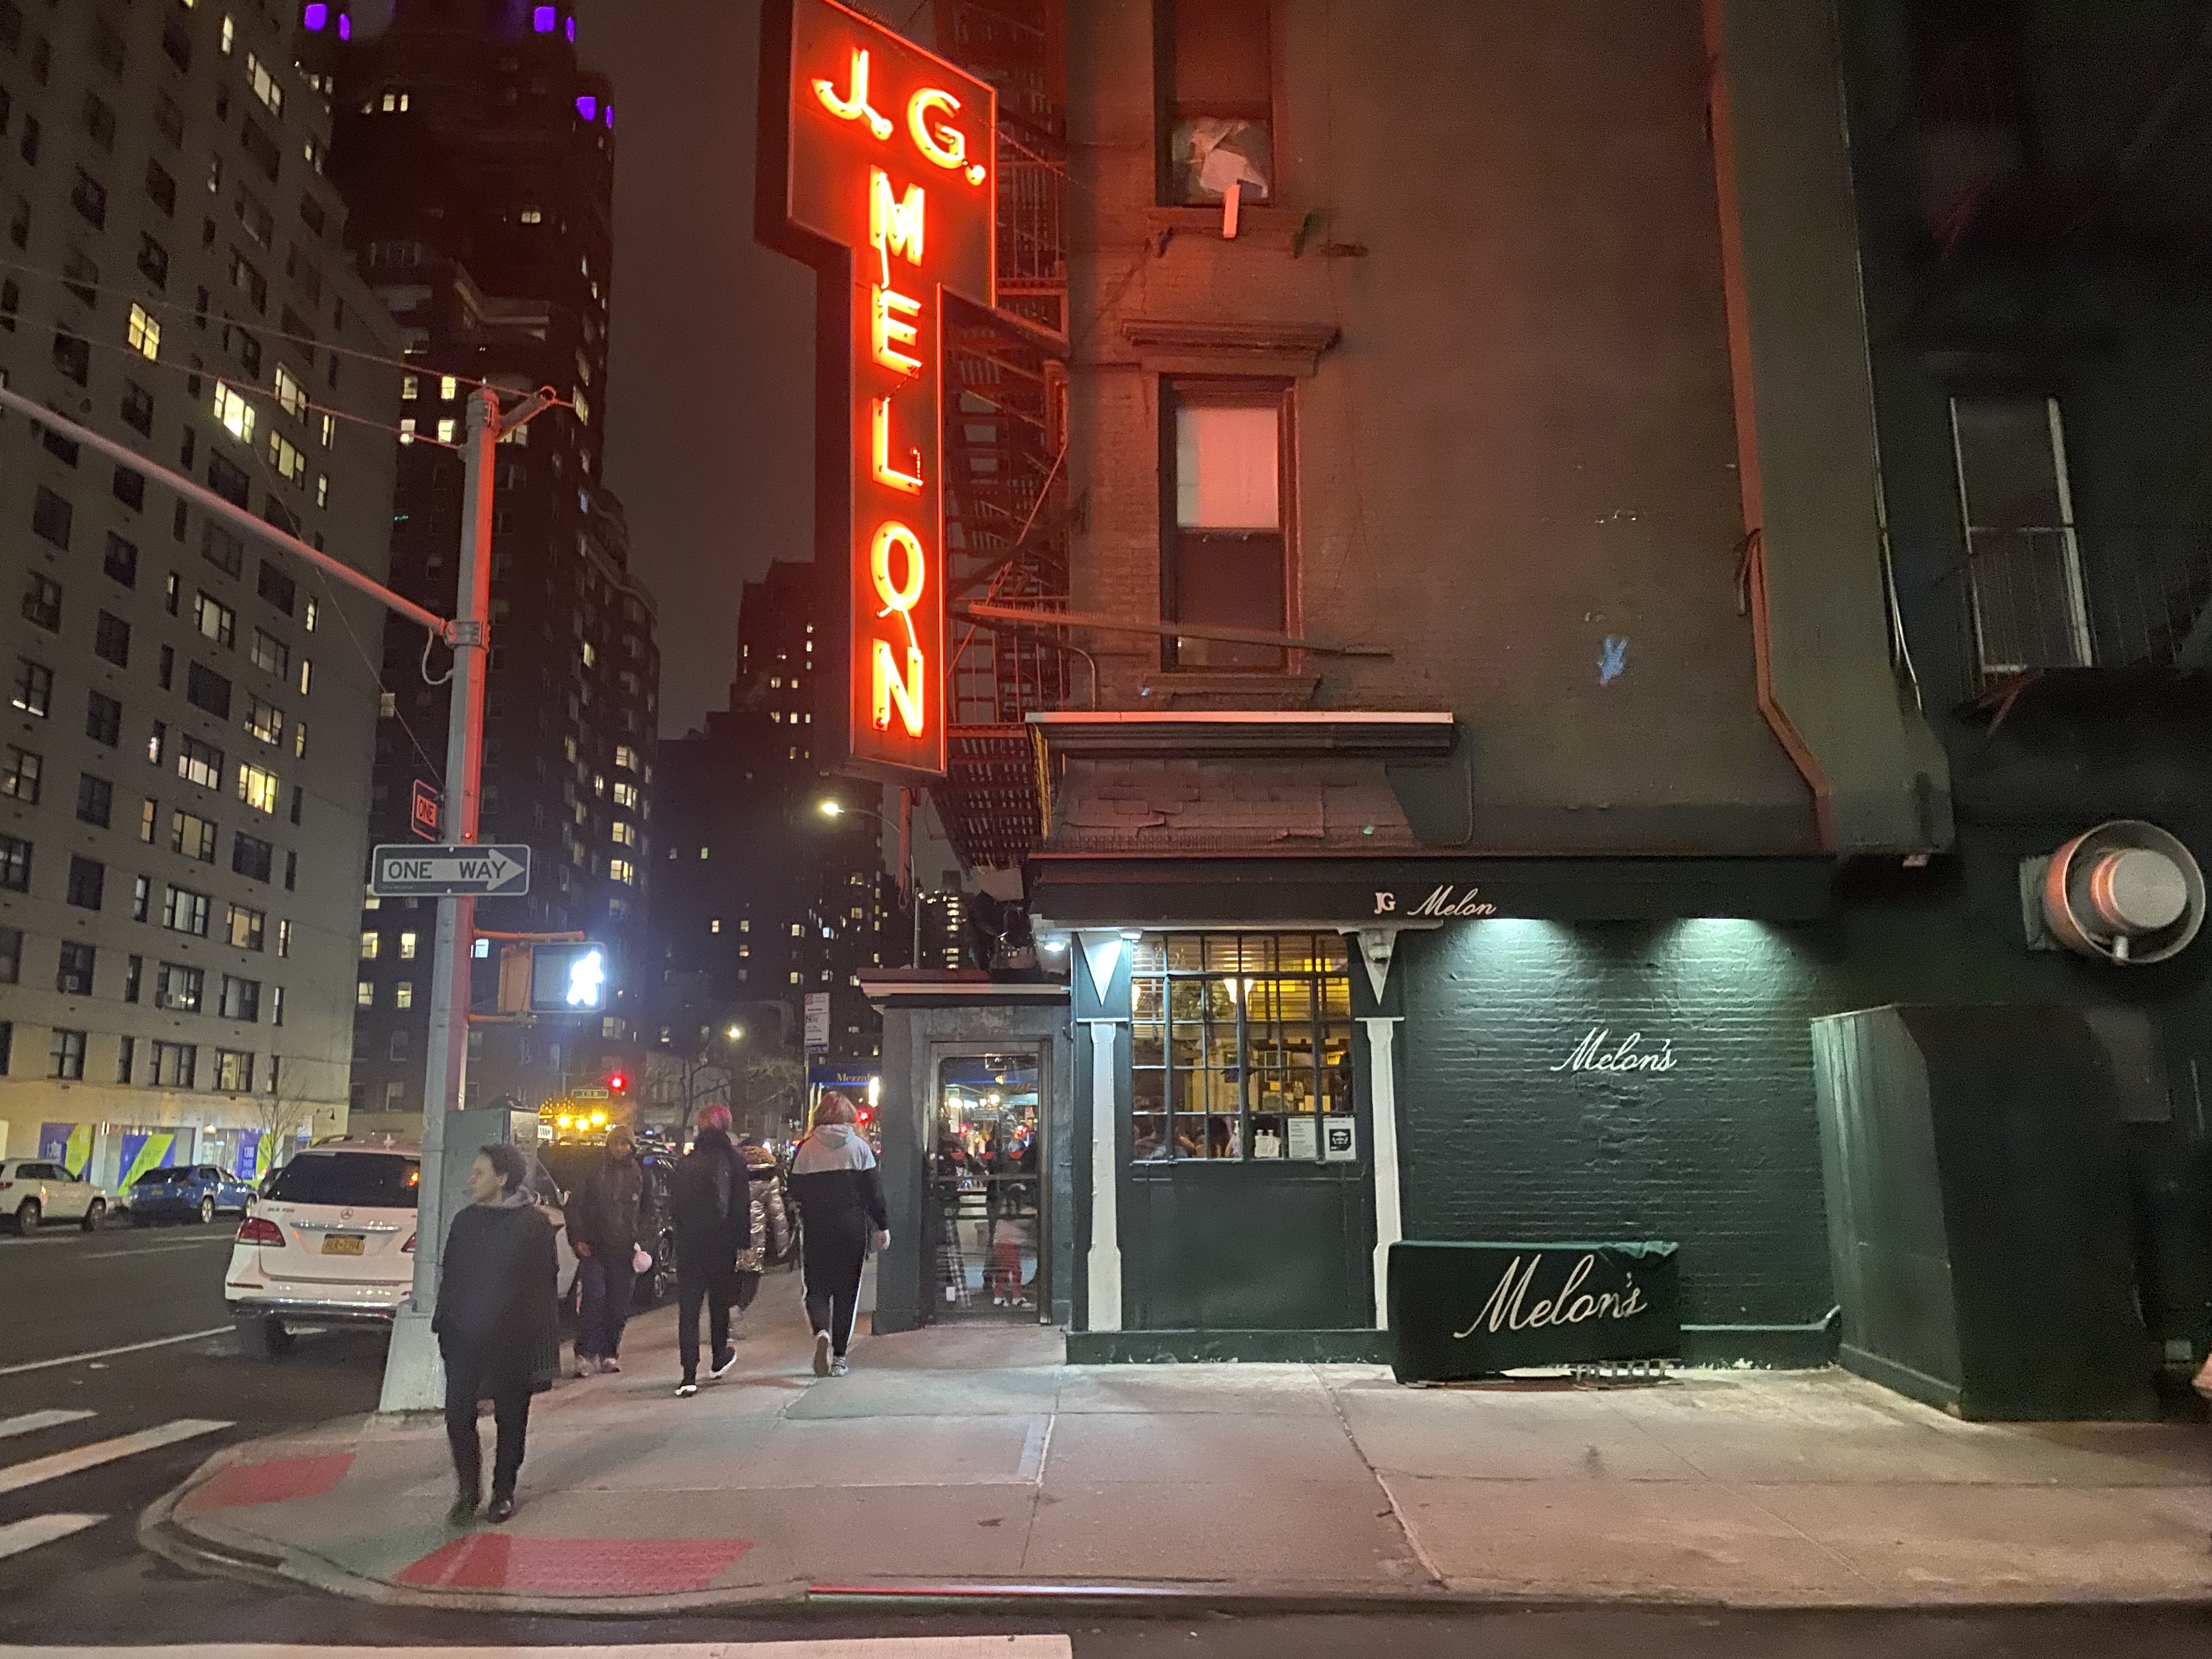 A neon red awning hangs upright outside of J.G. Melon, beckoning patrons inside